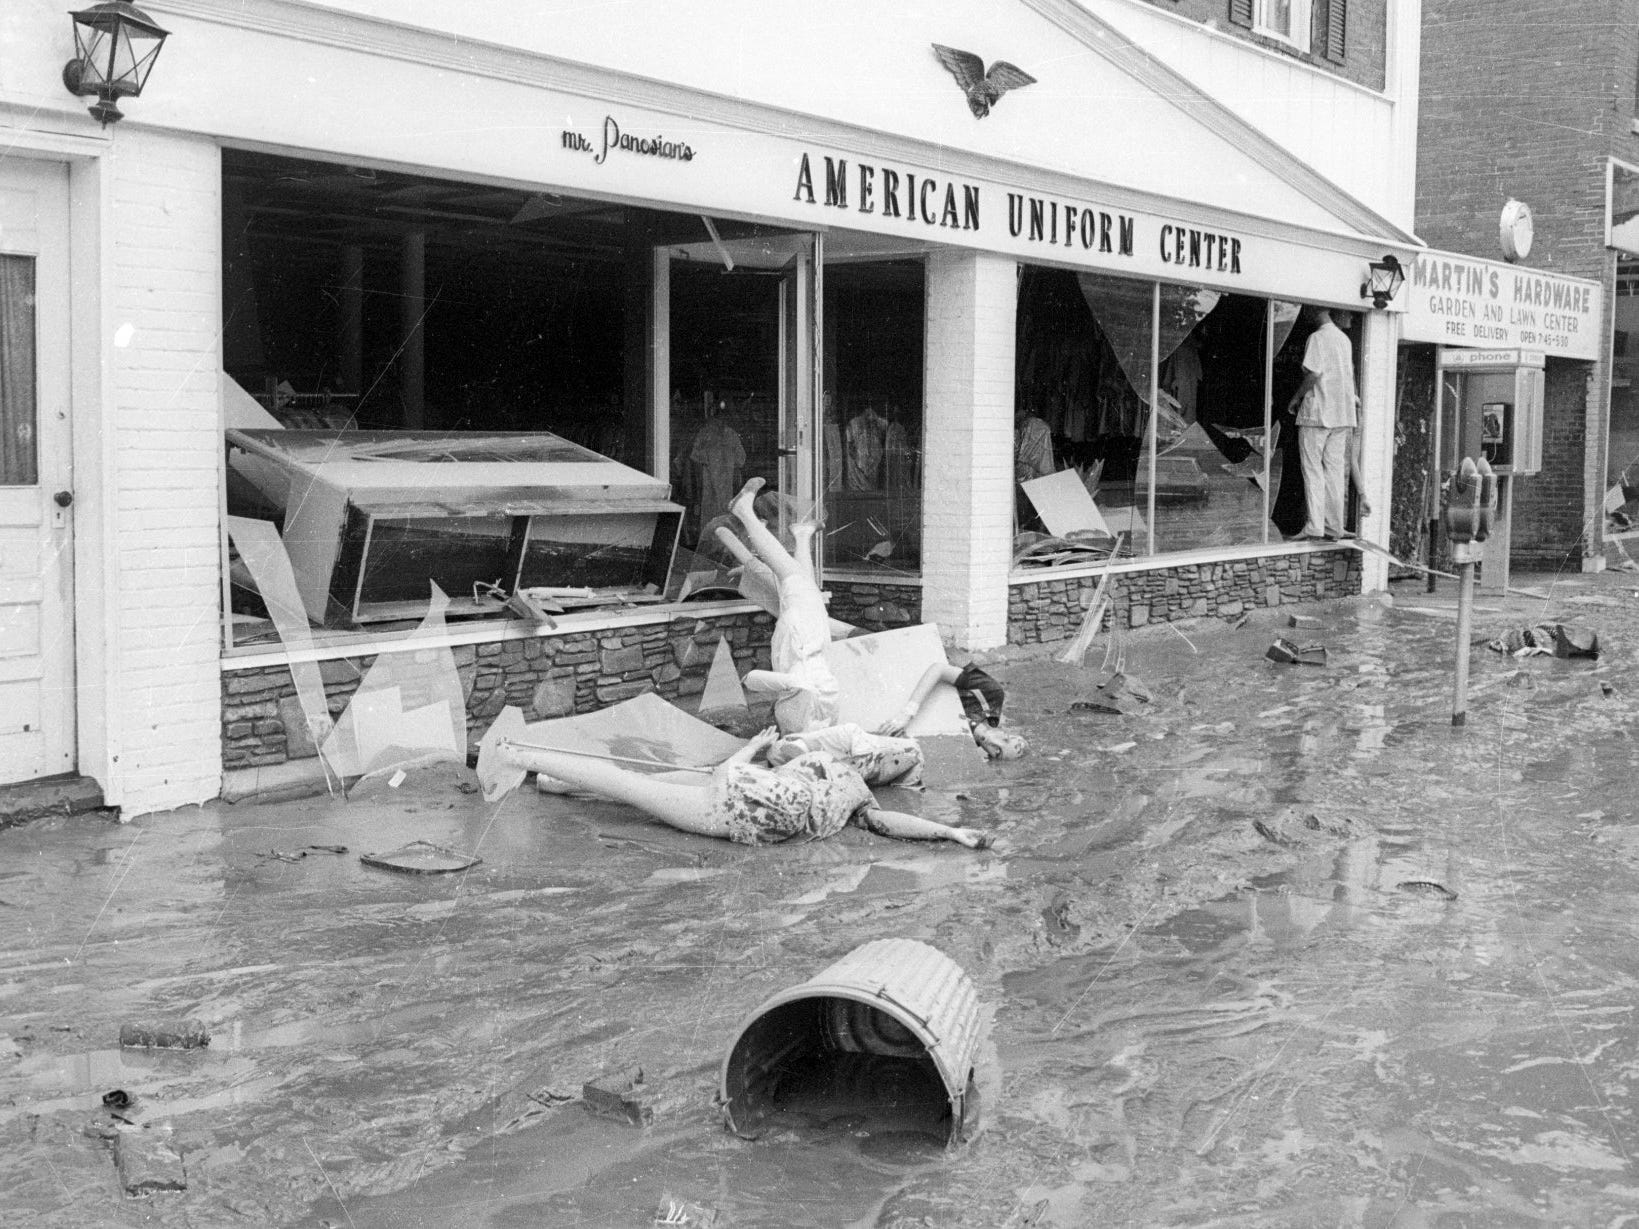 The American Uniform Center on South Main Street in Elmira was in the path of Agnes. This photo was taken during the week after the flood.